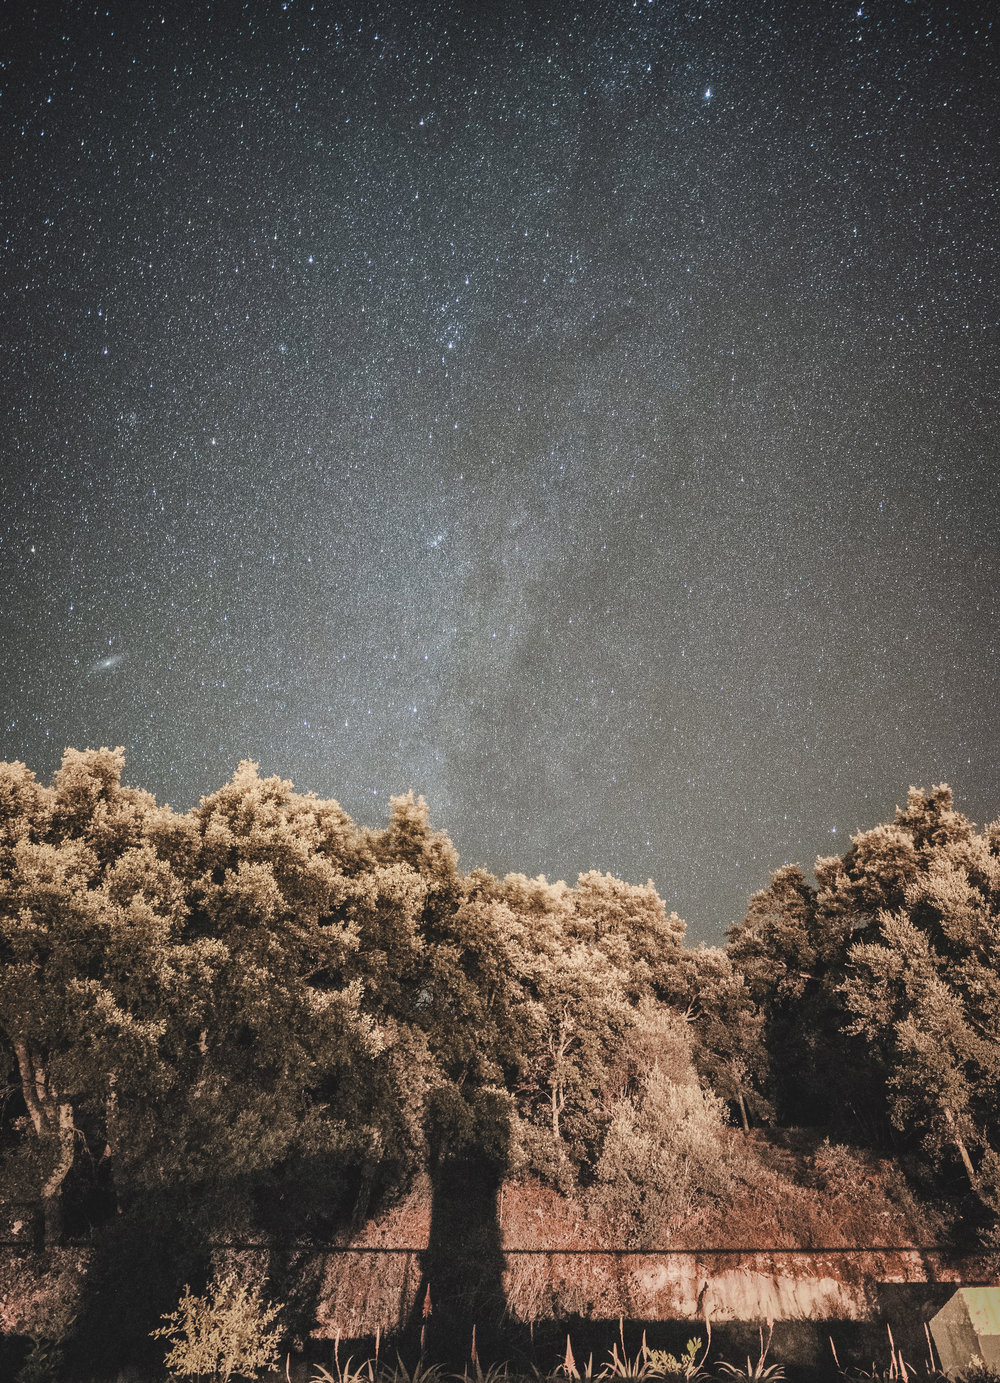 monchique portugal astrophotography. stars. milkyway. great view of the stars. tress and stars.jpg